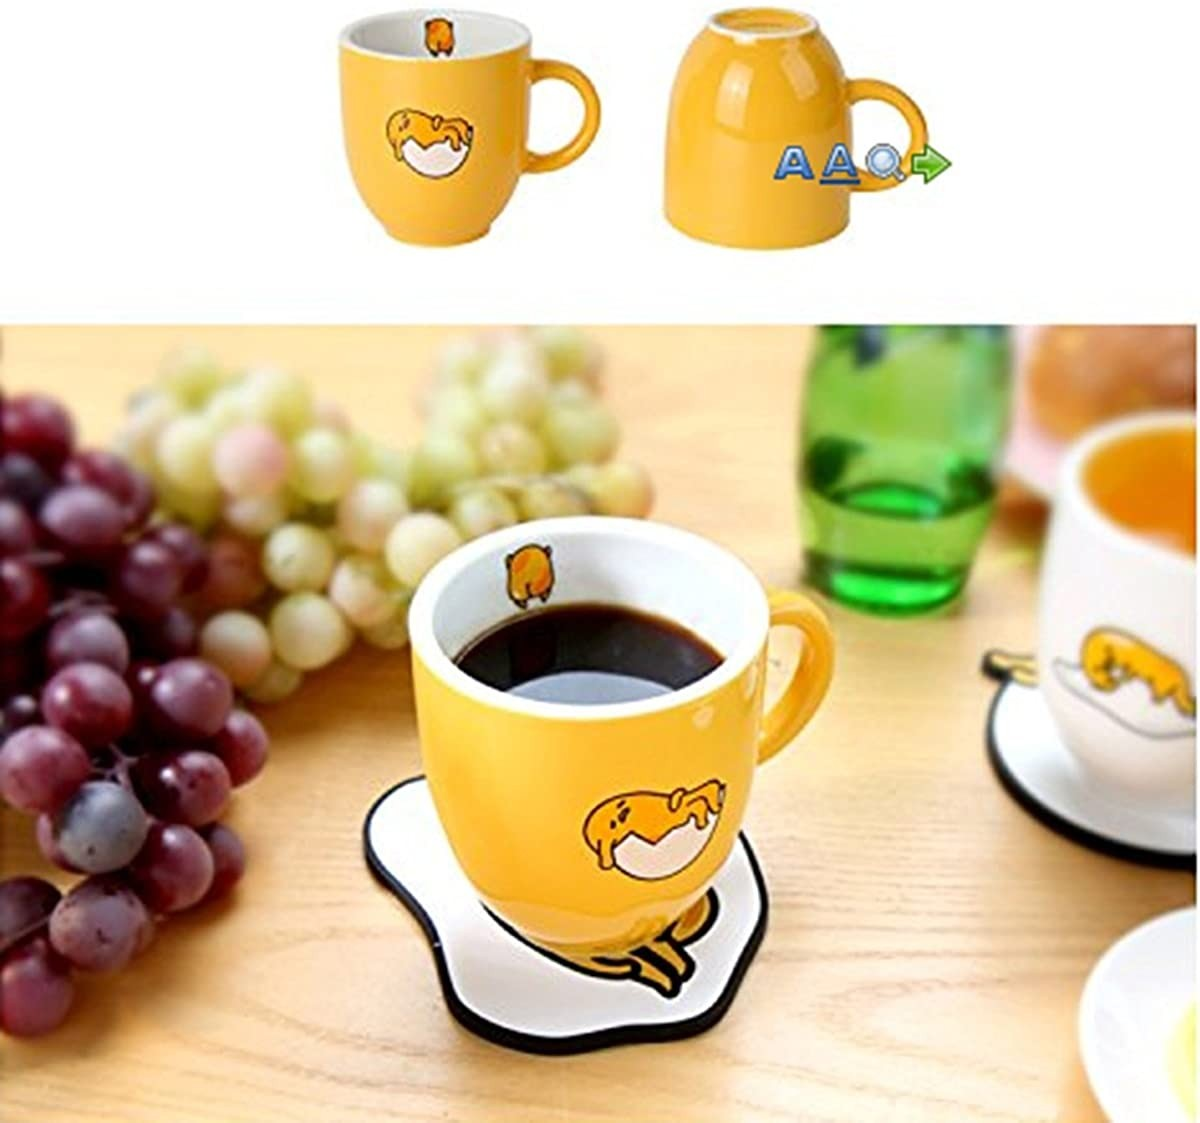 Sanrio Gudetama Ceramic Coffee / Tea Mug Cup (3 Designs) (Yellow)